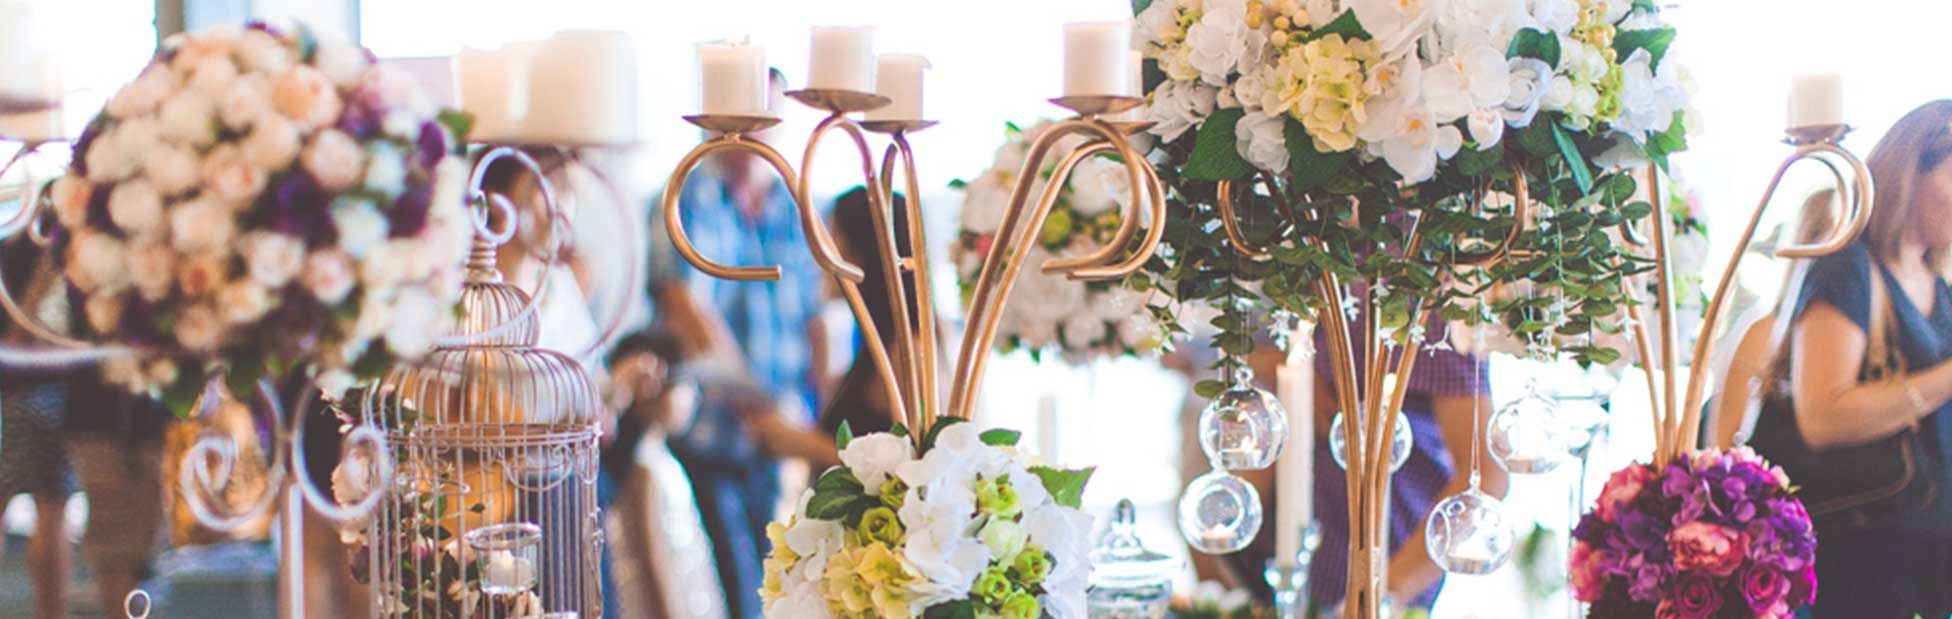 Table filled with wedding decoration examples